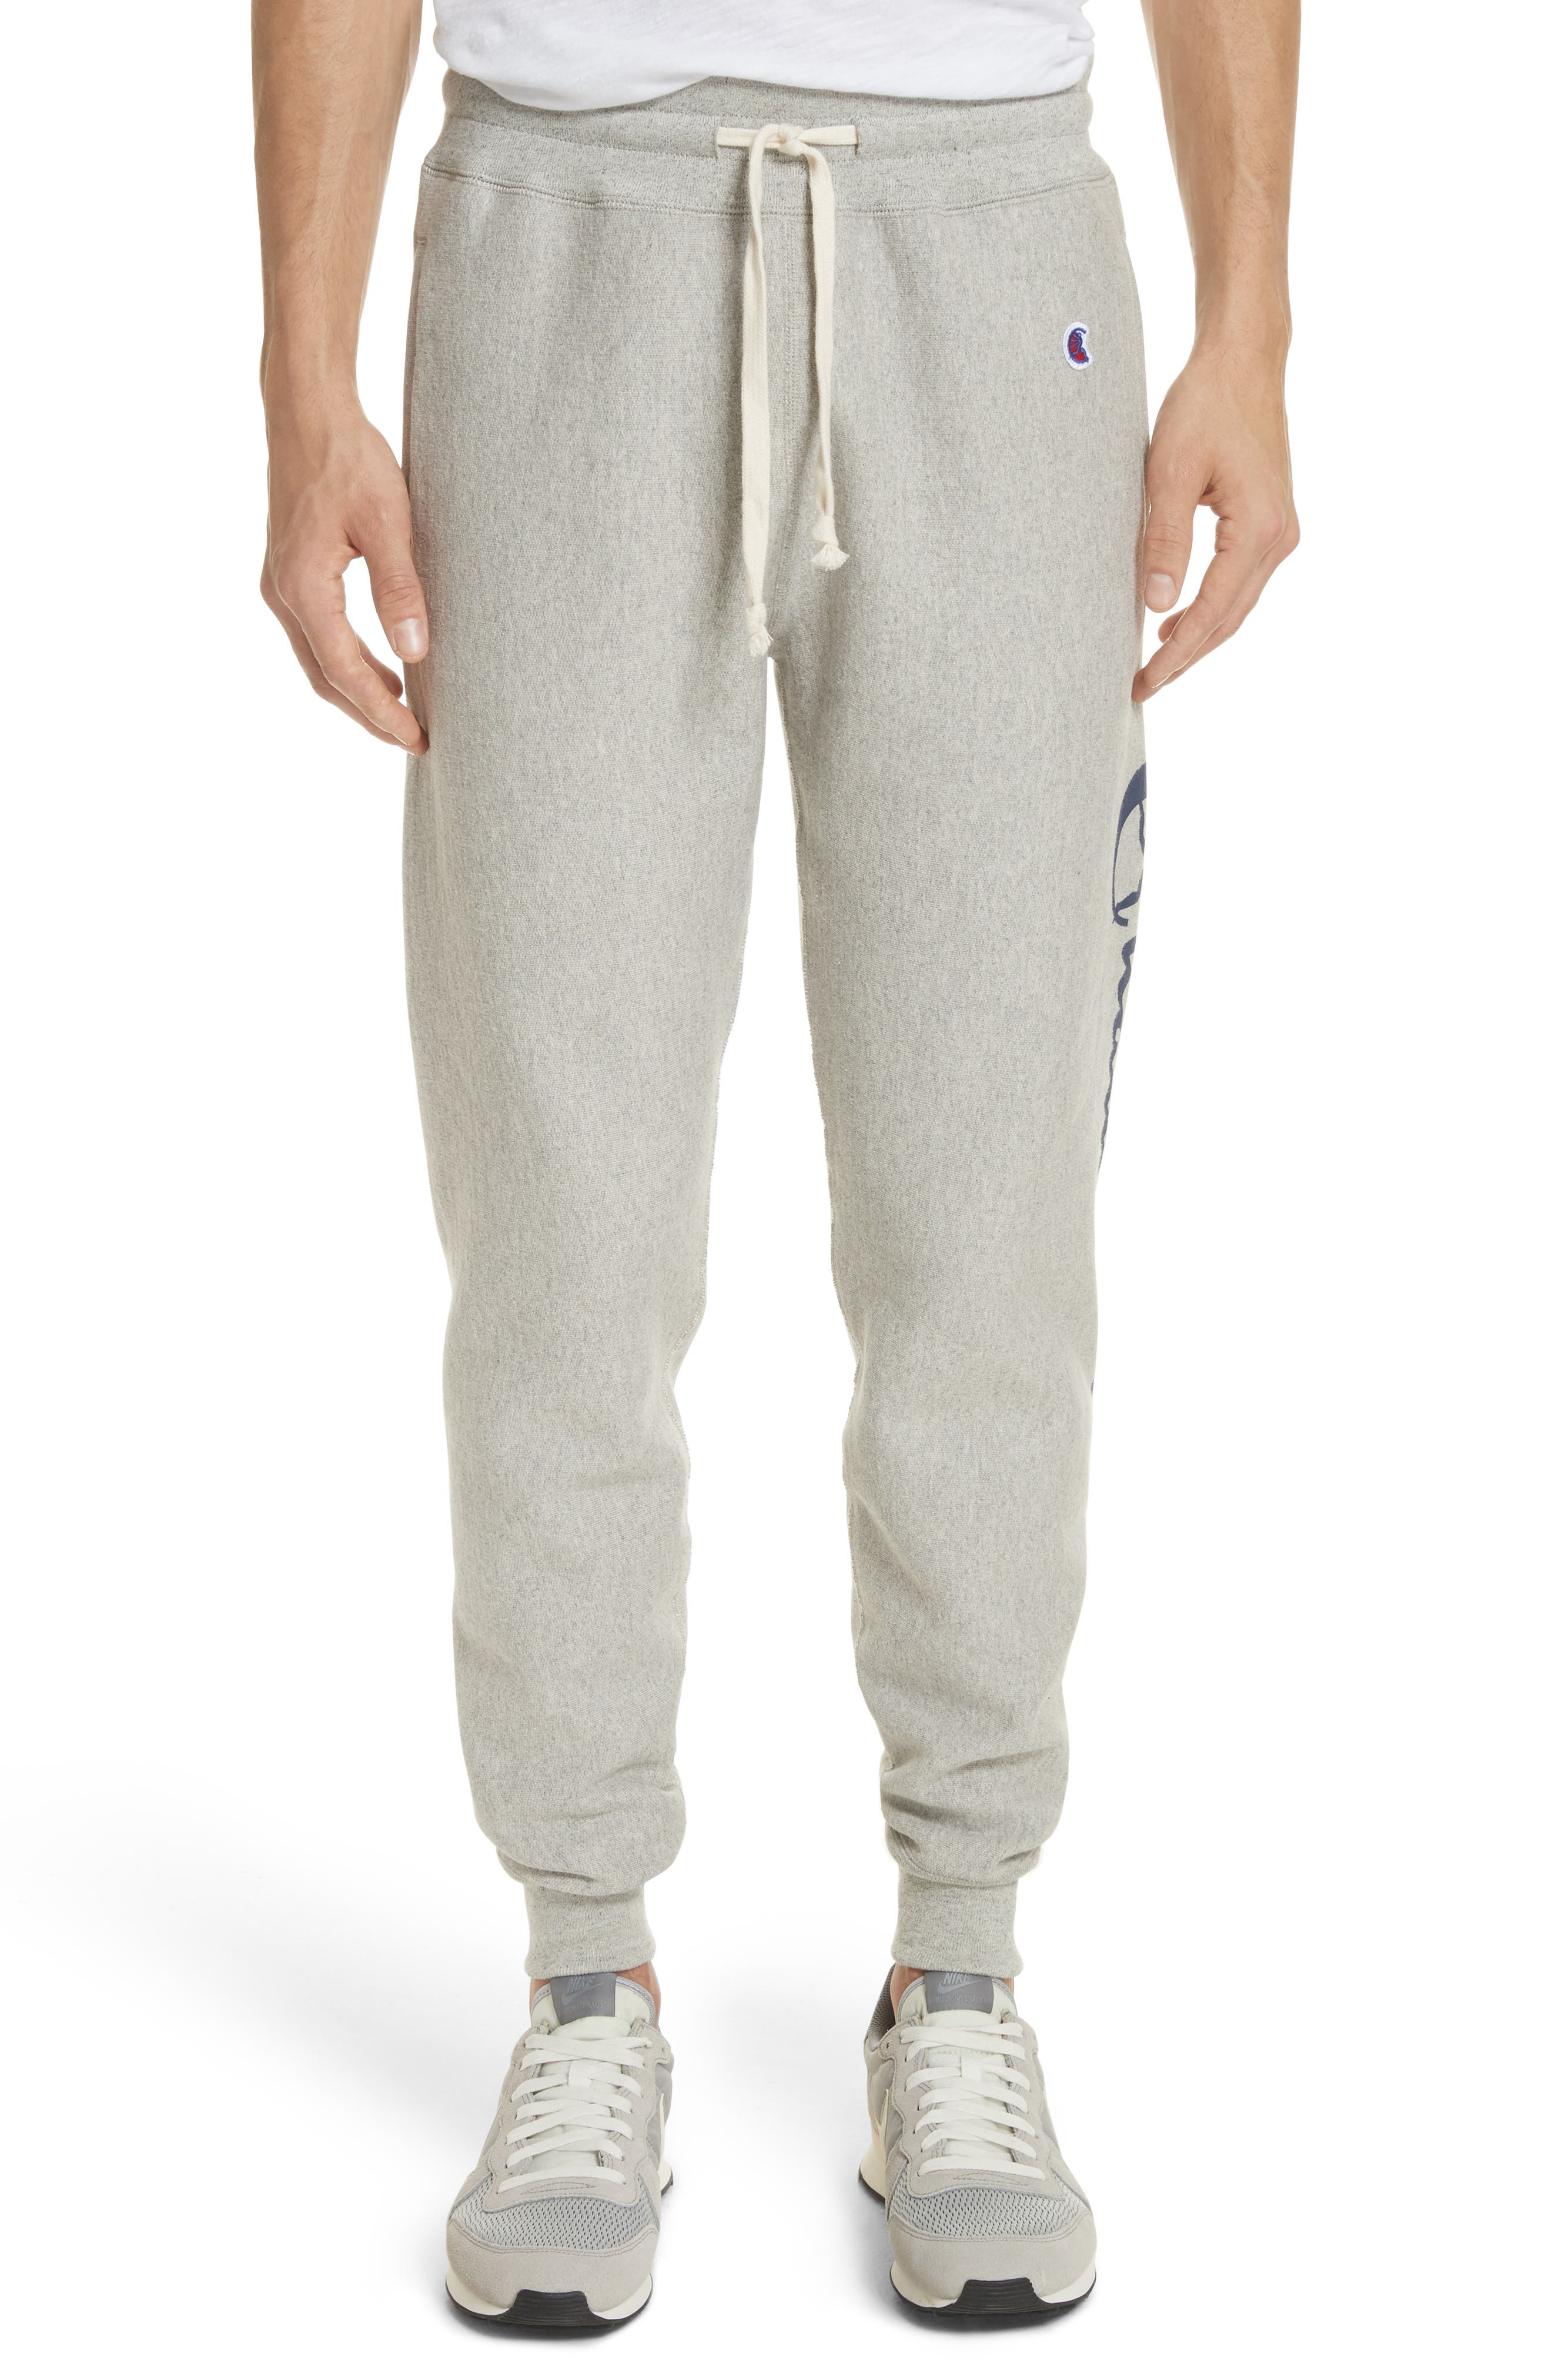 Todd Snyder + Champion Sweatpants